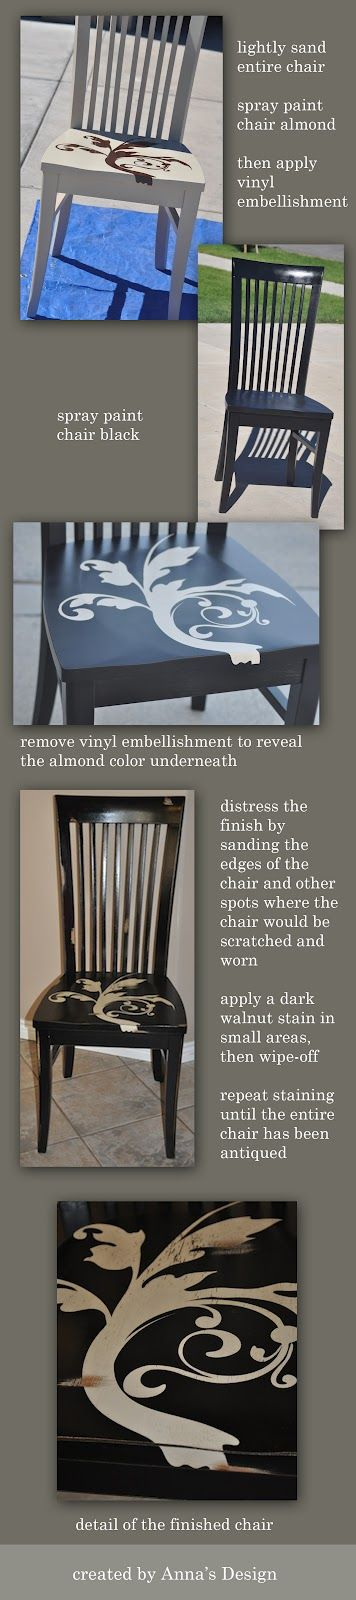 upcycle old kitchen chairs #ivorybloom #vinyl